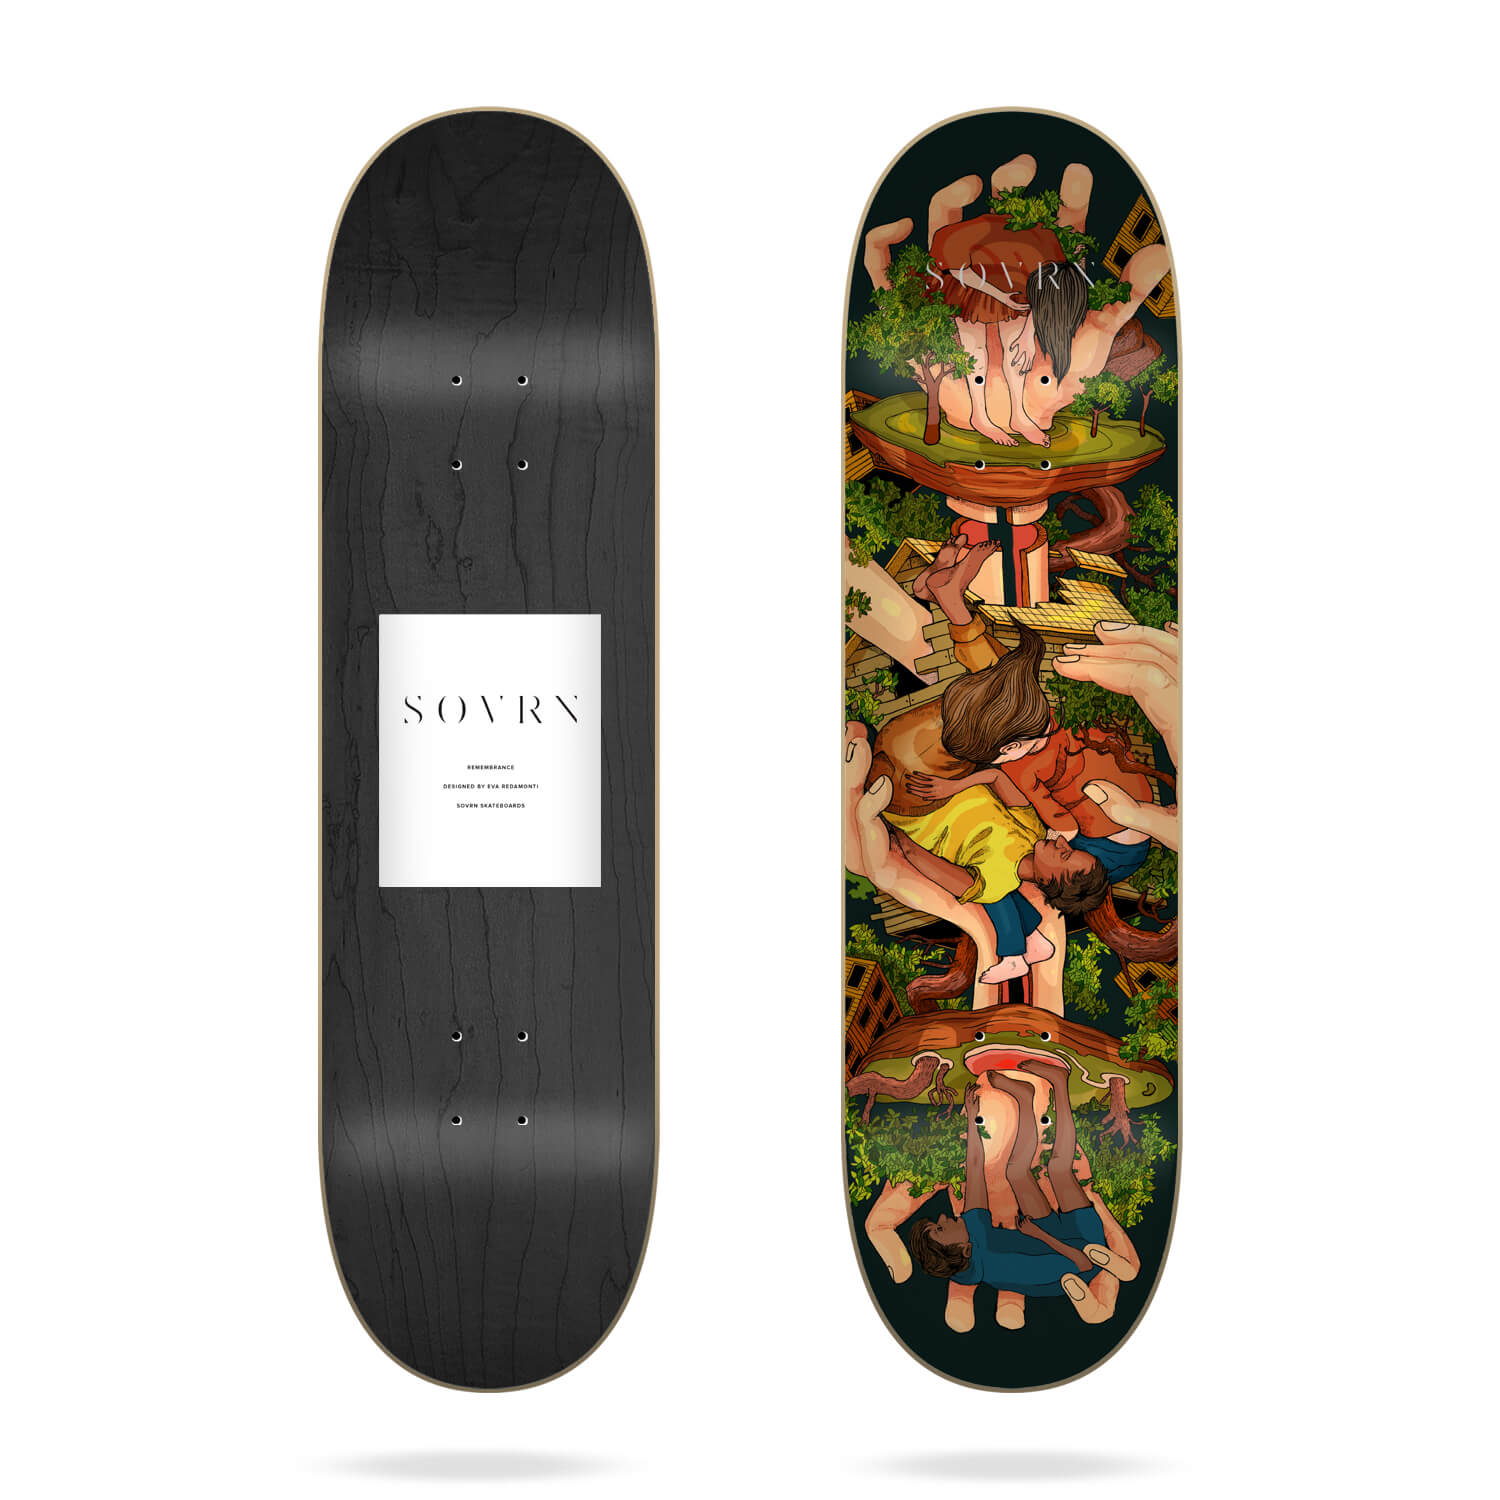 "Sovrn Remembrance 8.25"" skateboard deck"